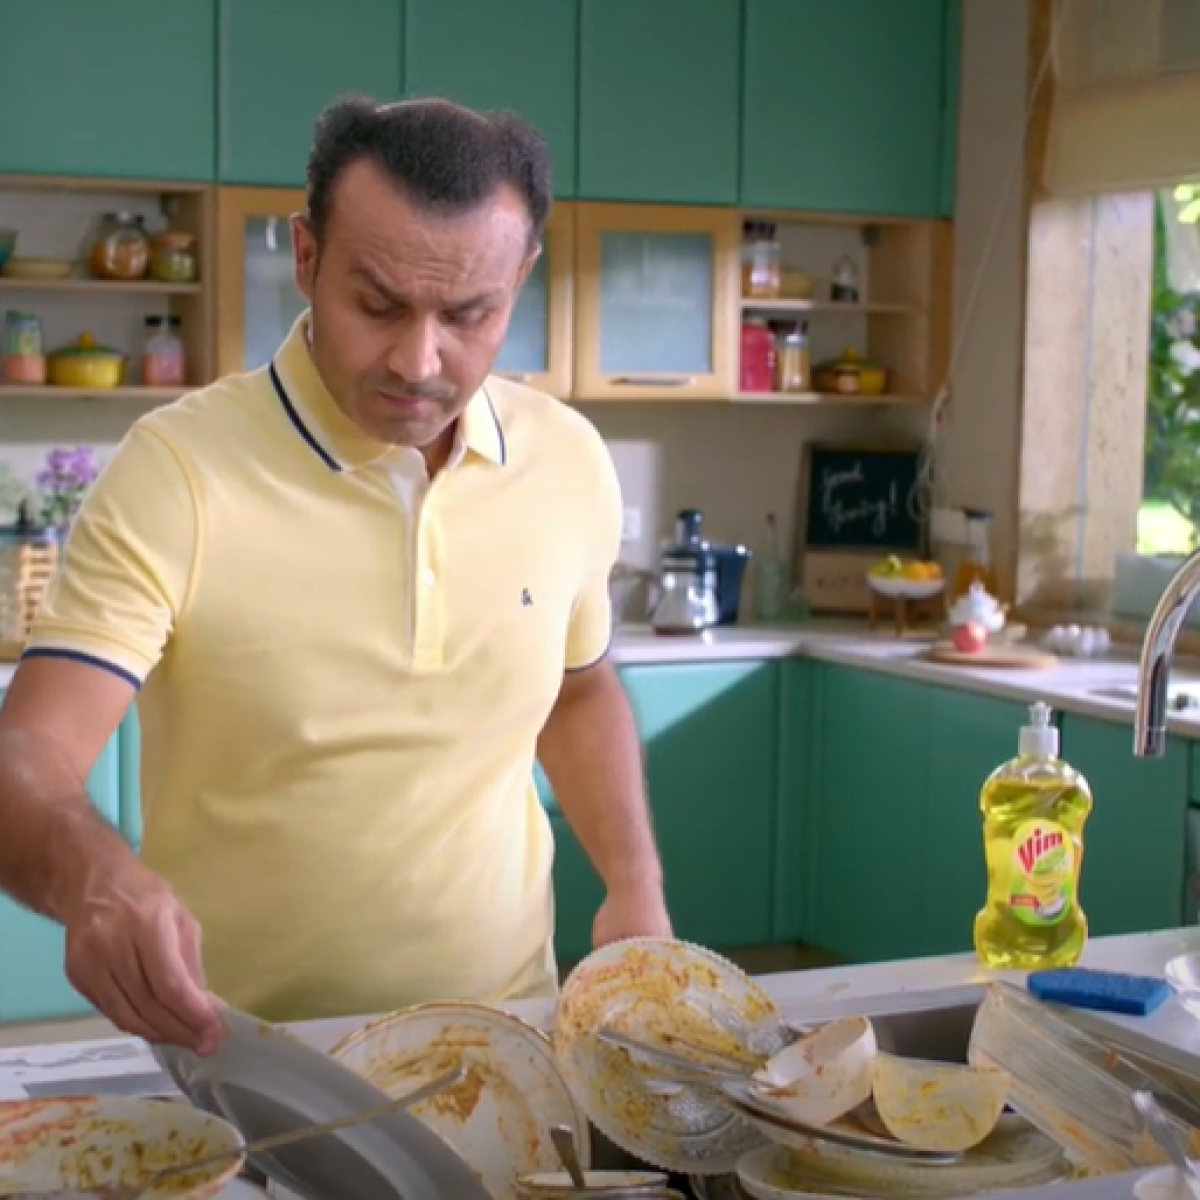 Watch: Virender Sehwag bats off germs in this liquid hand wash advertisement